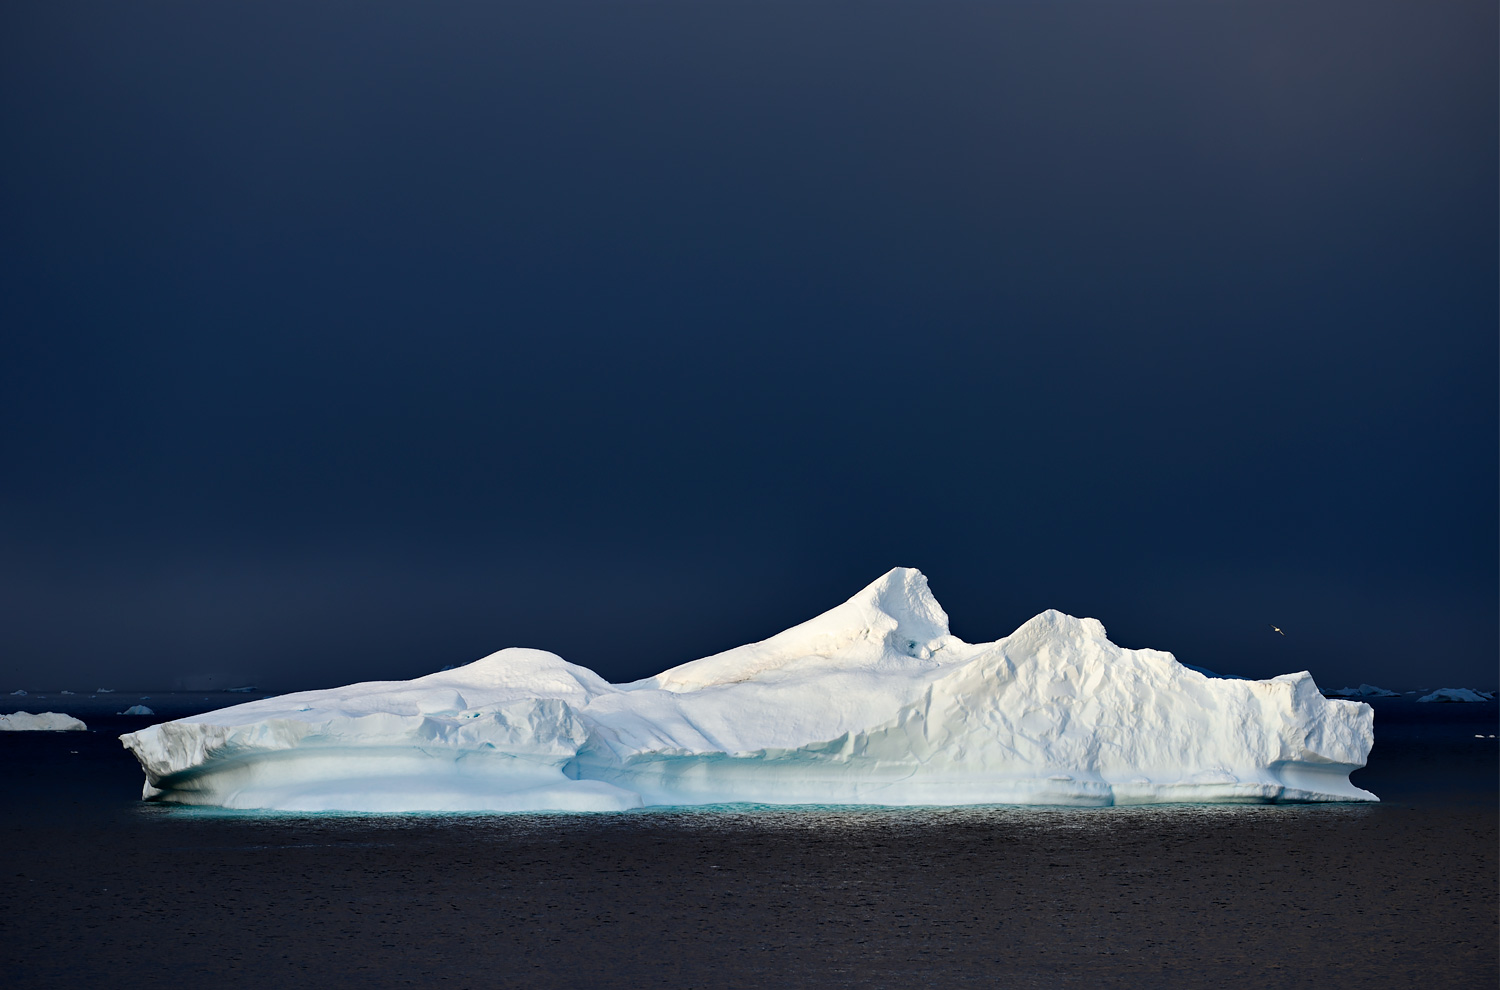 Blue Night & Iceberg